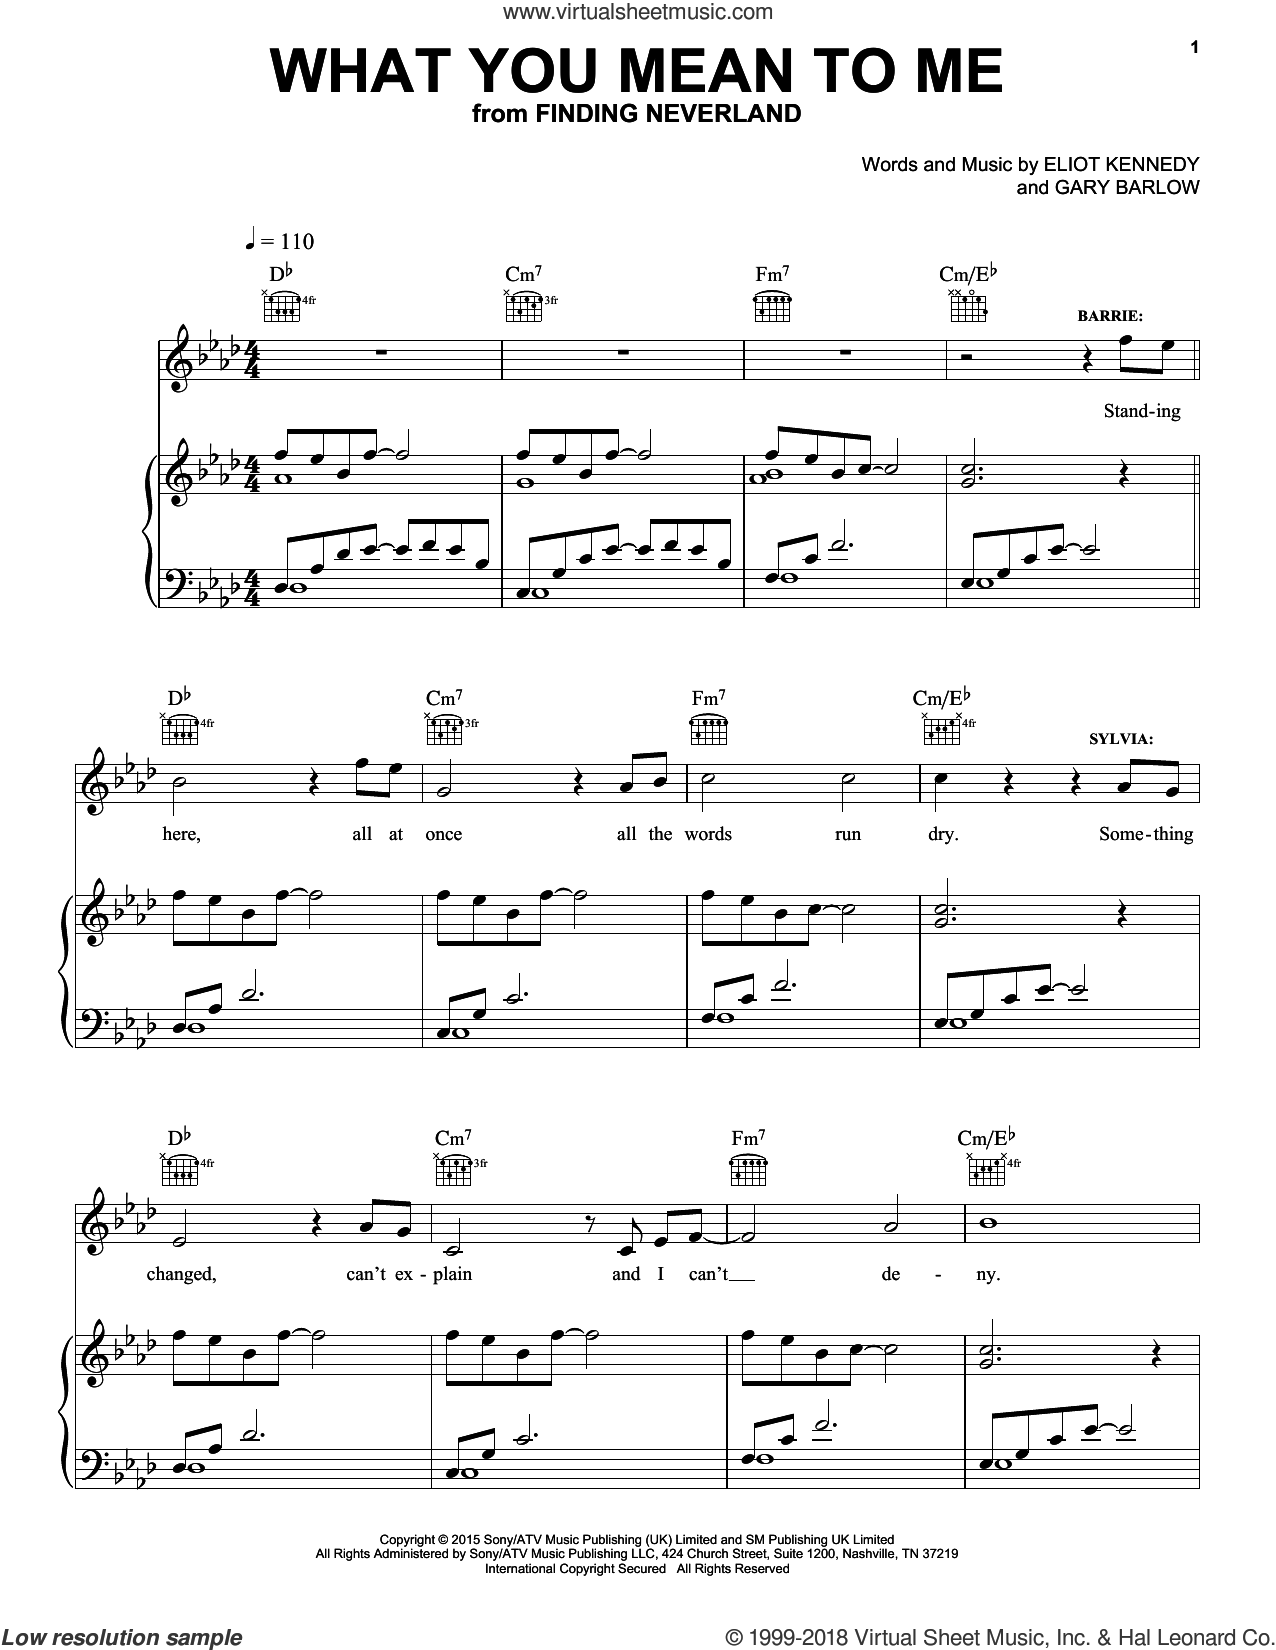 What You Mean To Me sheet music for voice, piano or guitar by Gary Barlow & Eliot Kennedy, Eliot Kennedy, ELIOT KENNEDY and Gary Barlow, intermediate skill level